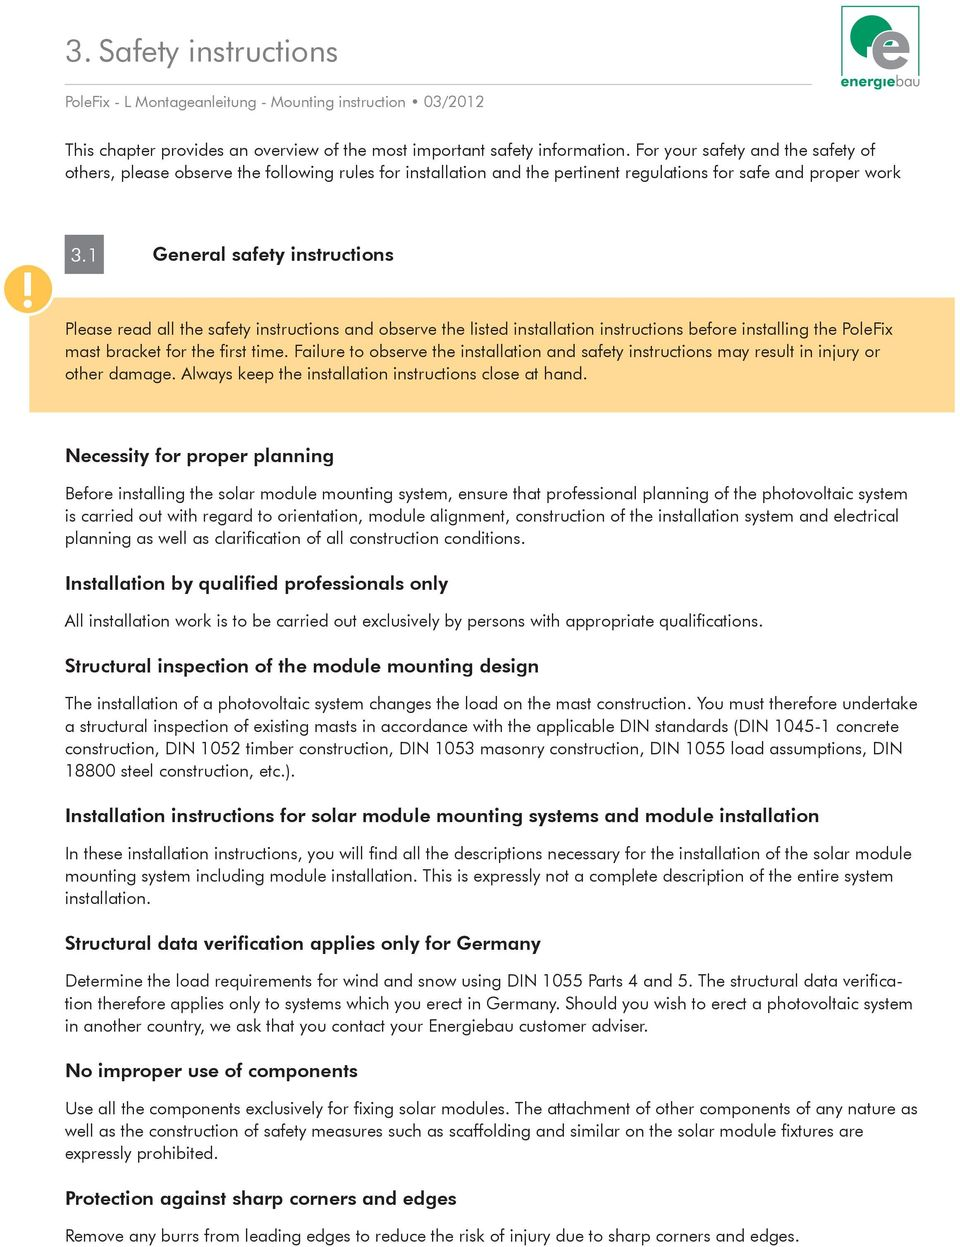 1 General safety instructions Please read all the safety instructions and observe the listed installation instructions before installing the PoleFix mast bracket for the first time.